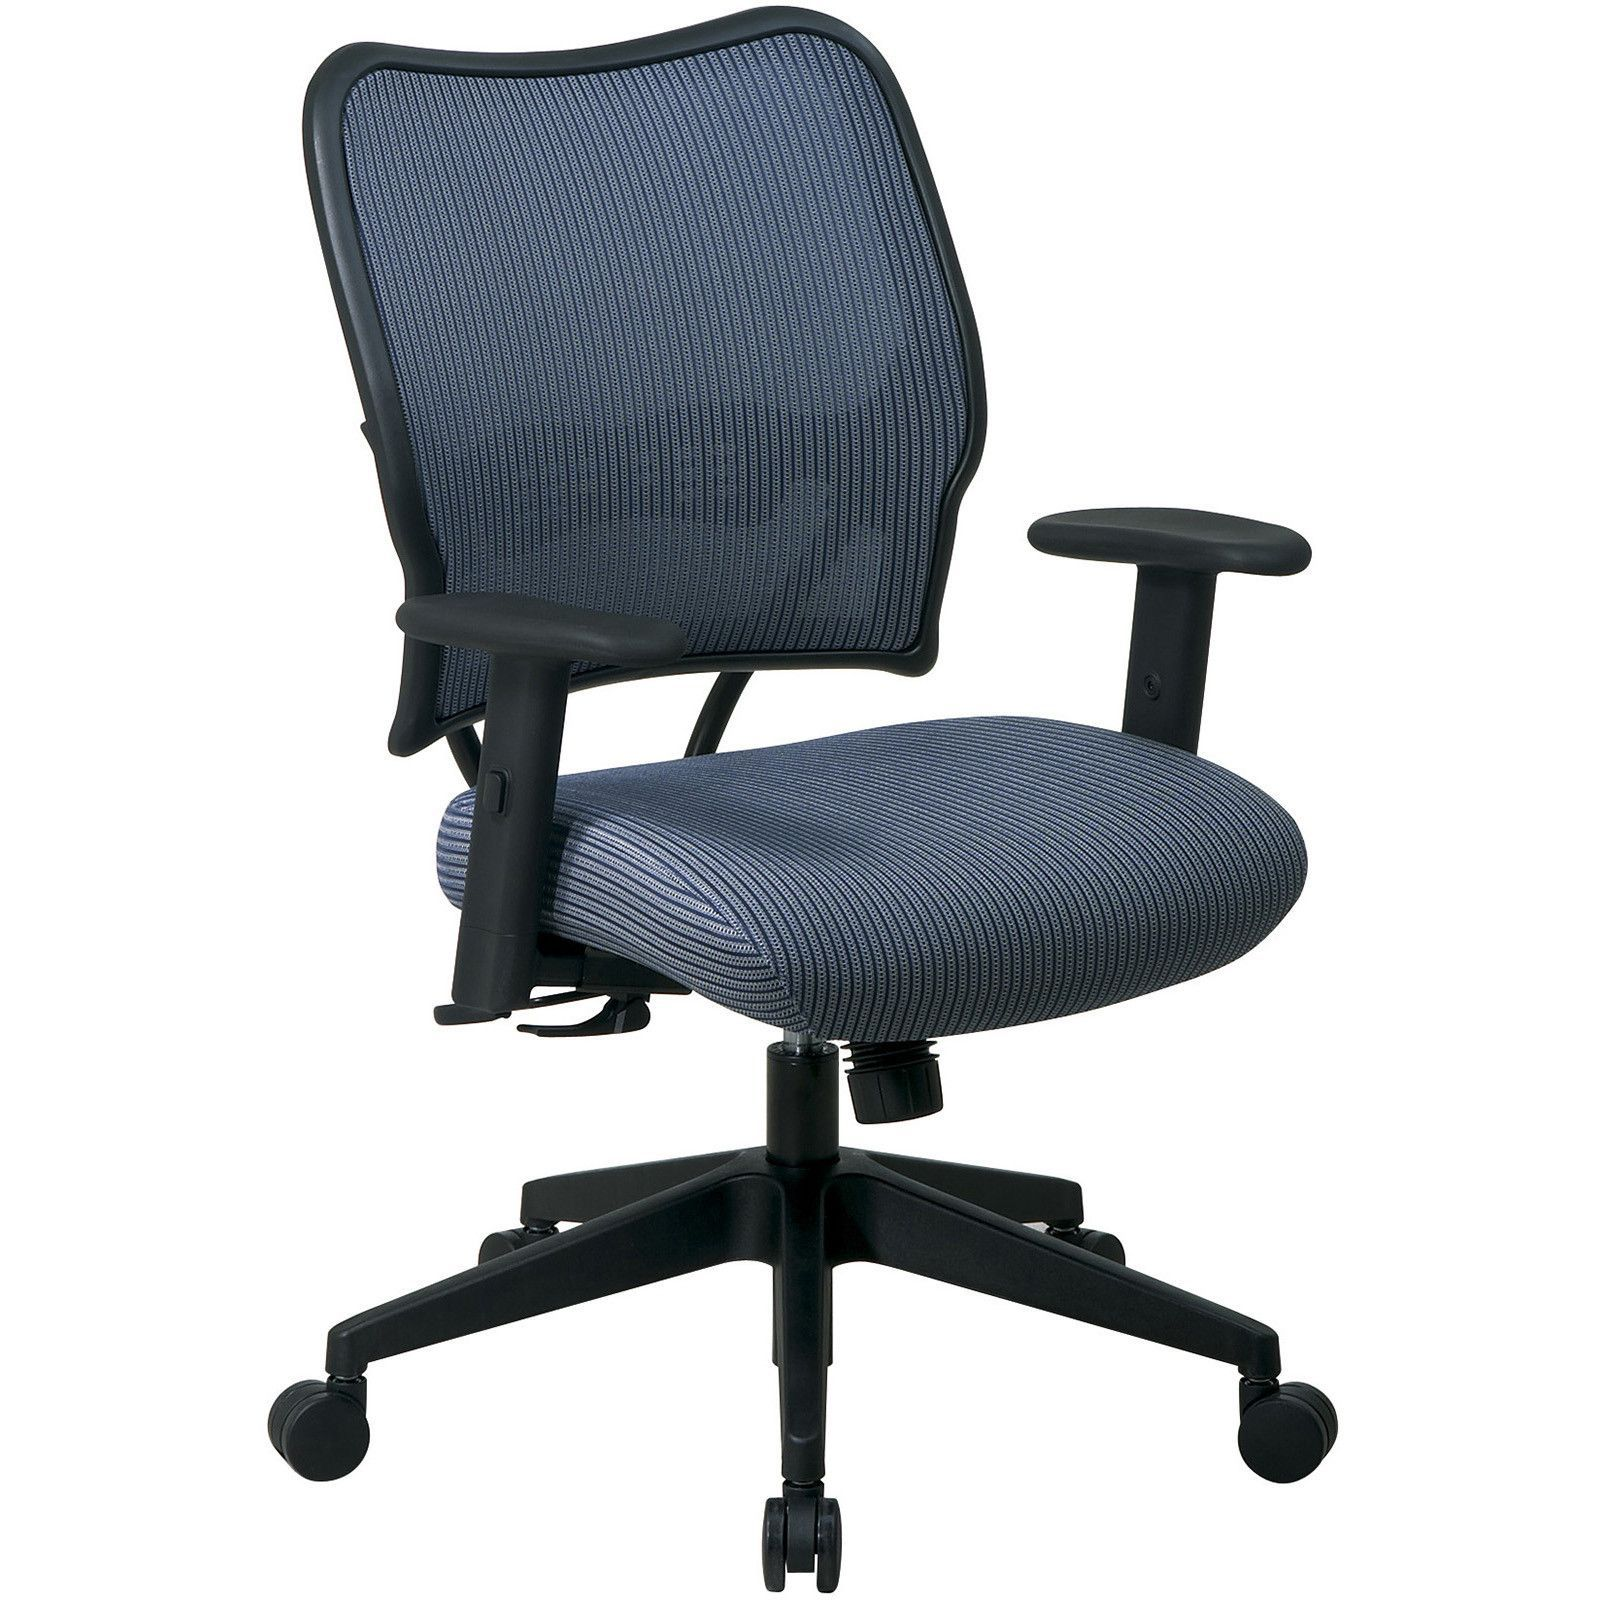 Deluxe Chair with VeraFlex Fabric & Adjustable Arms, Blue Mist